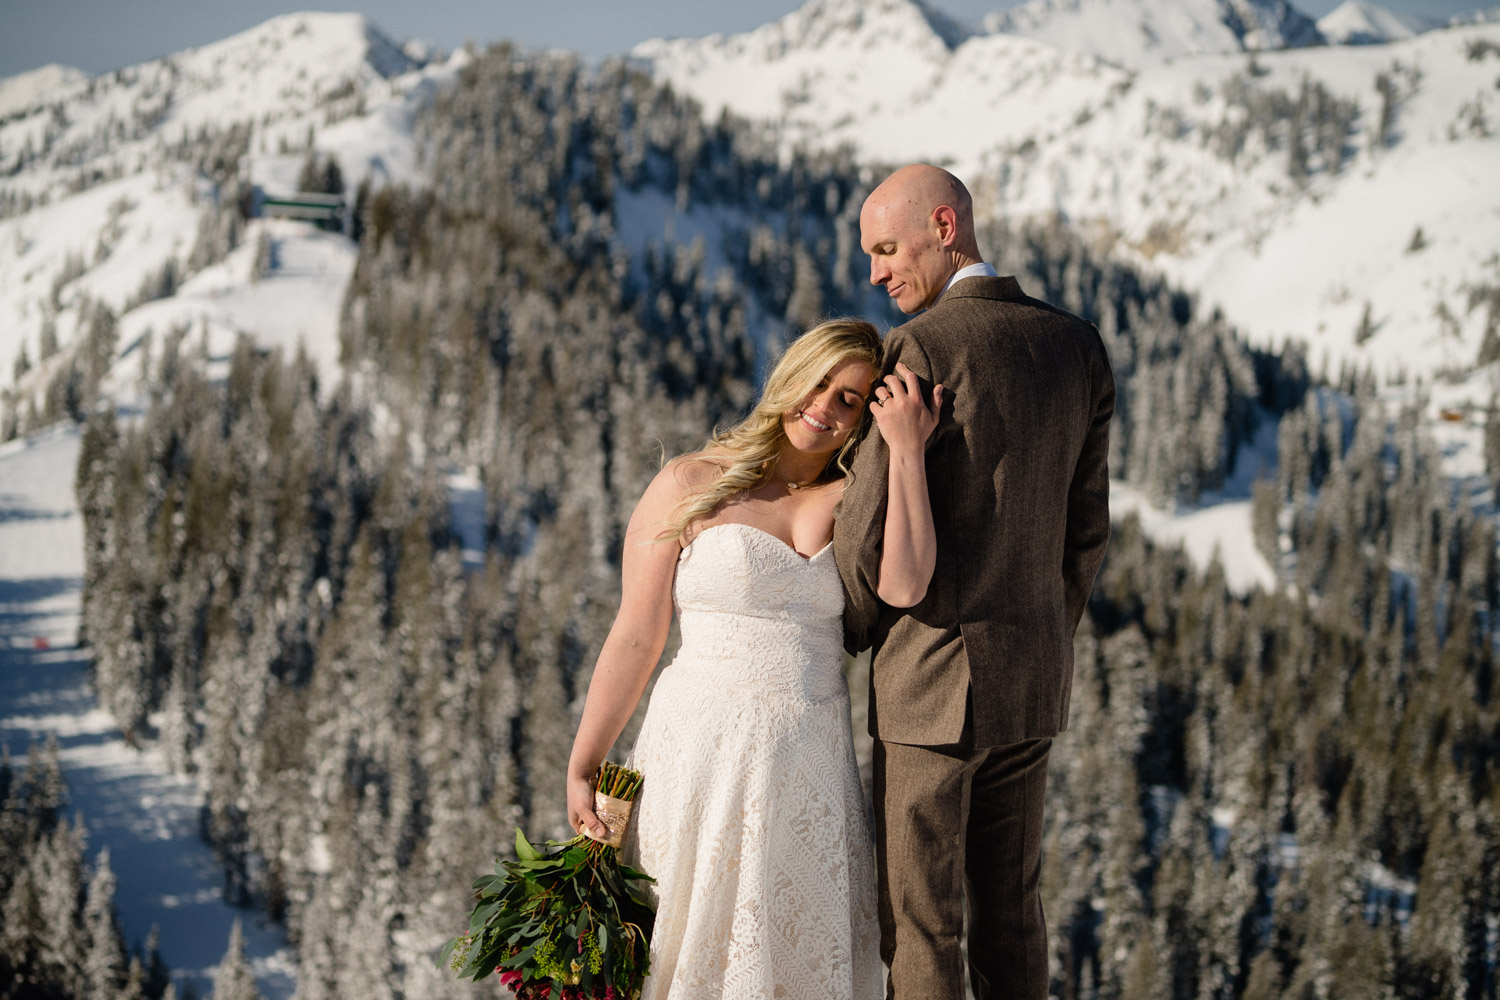 bride cuddles on groom on mountain top with trees